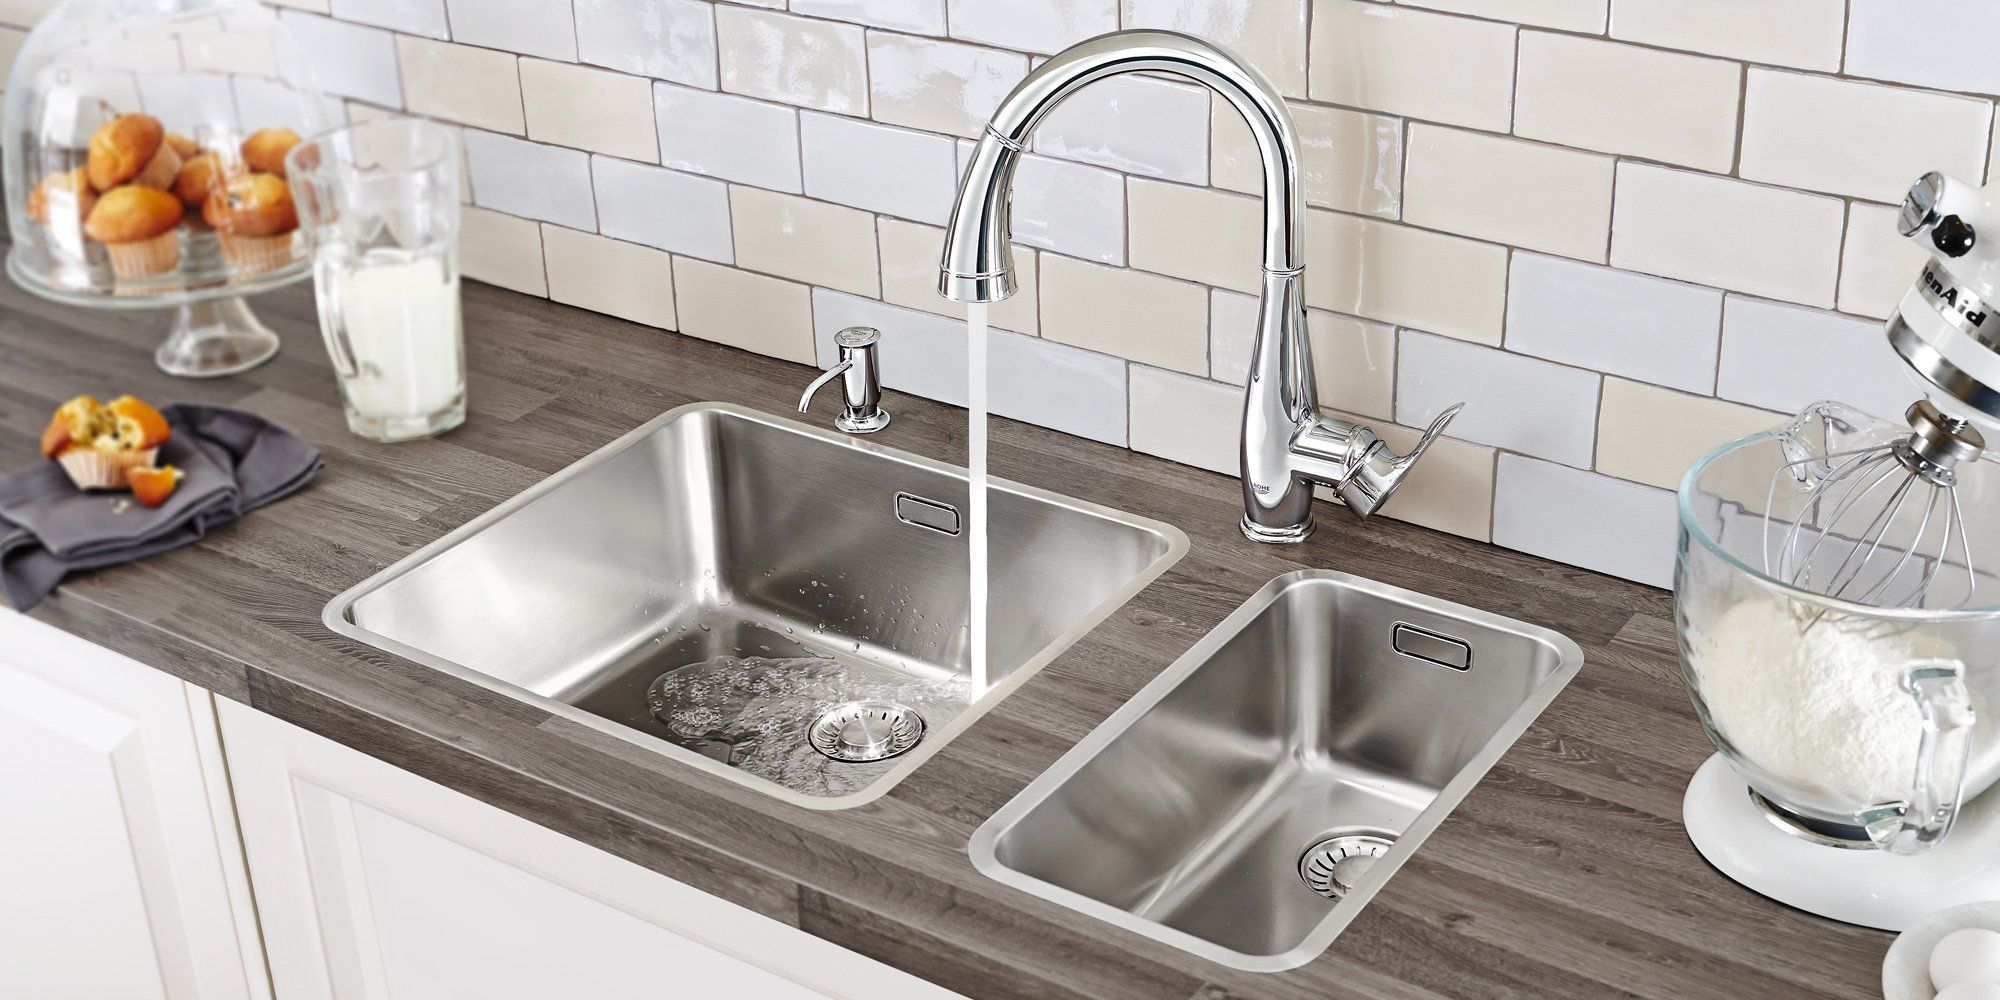 GROHE Kitchen and Bathroom Fixtures in the GTA | TAPS